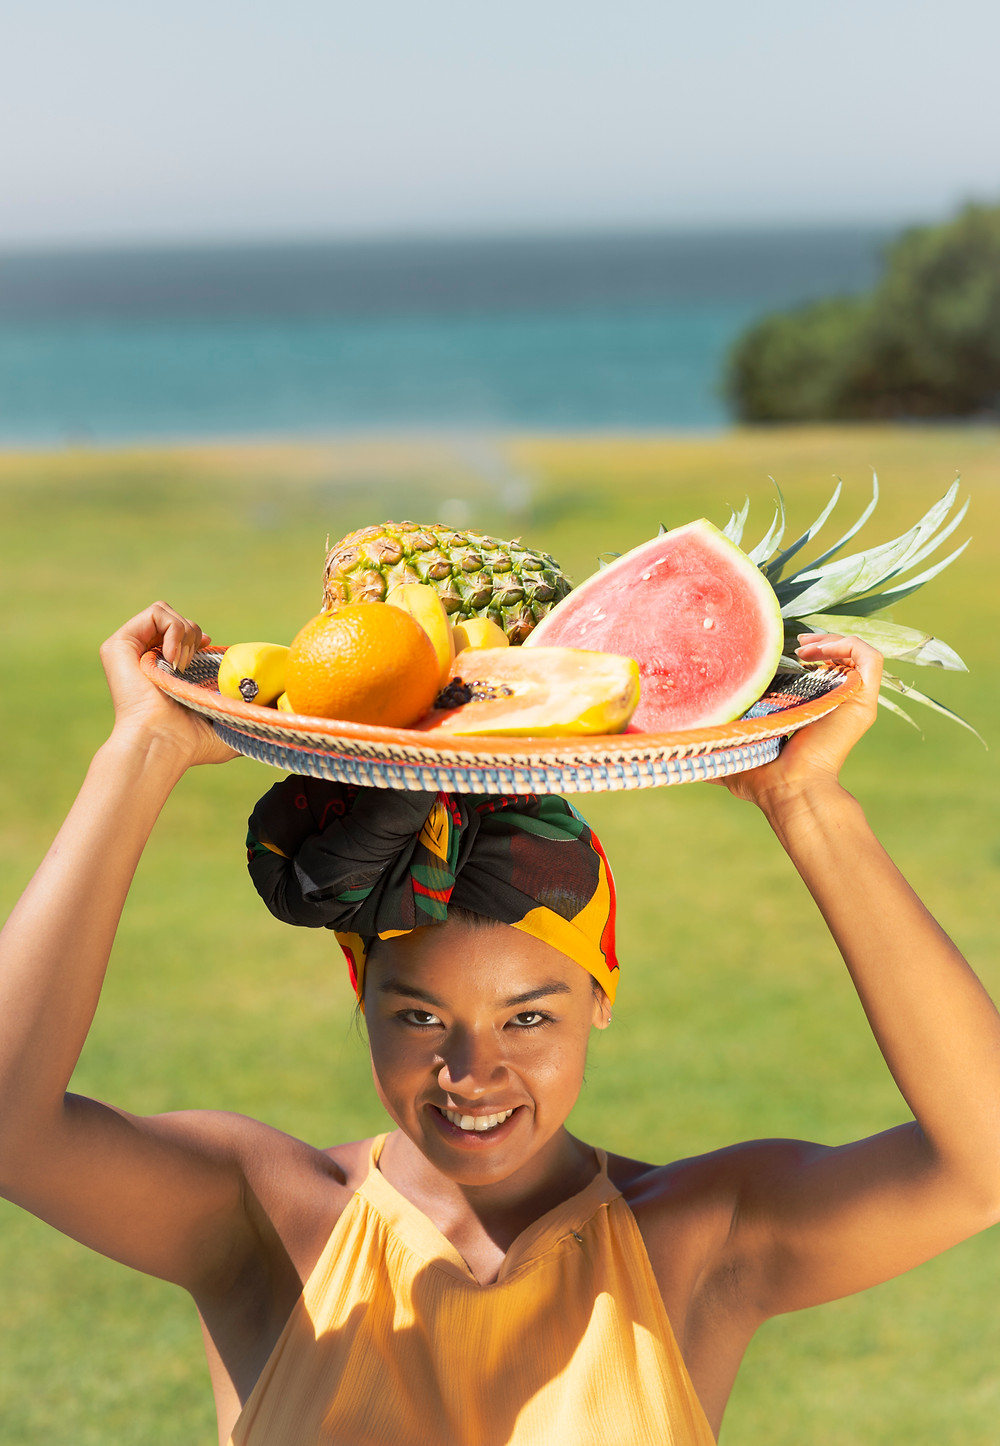 The model holding a tray full of tropical fruit.